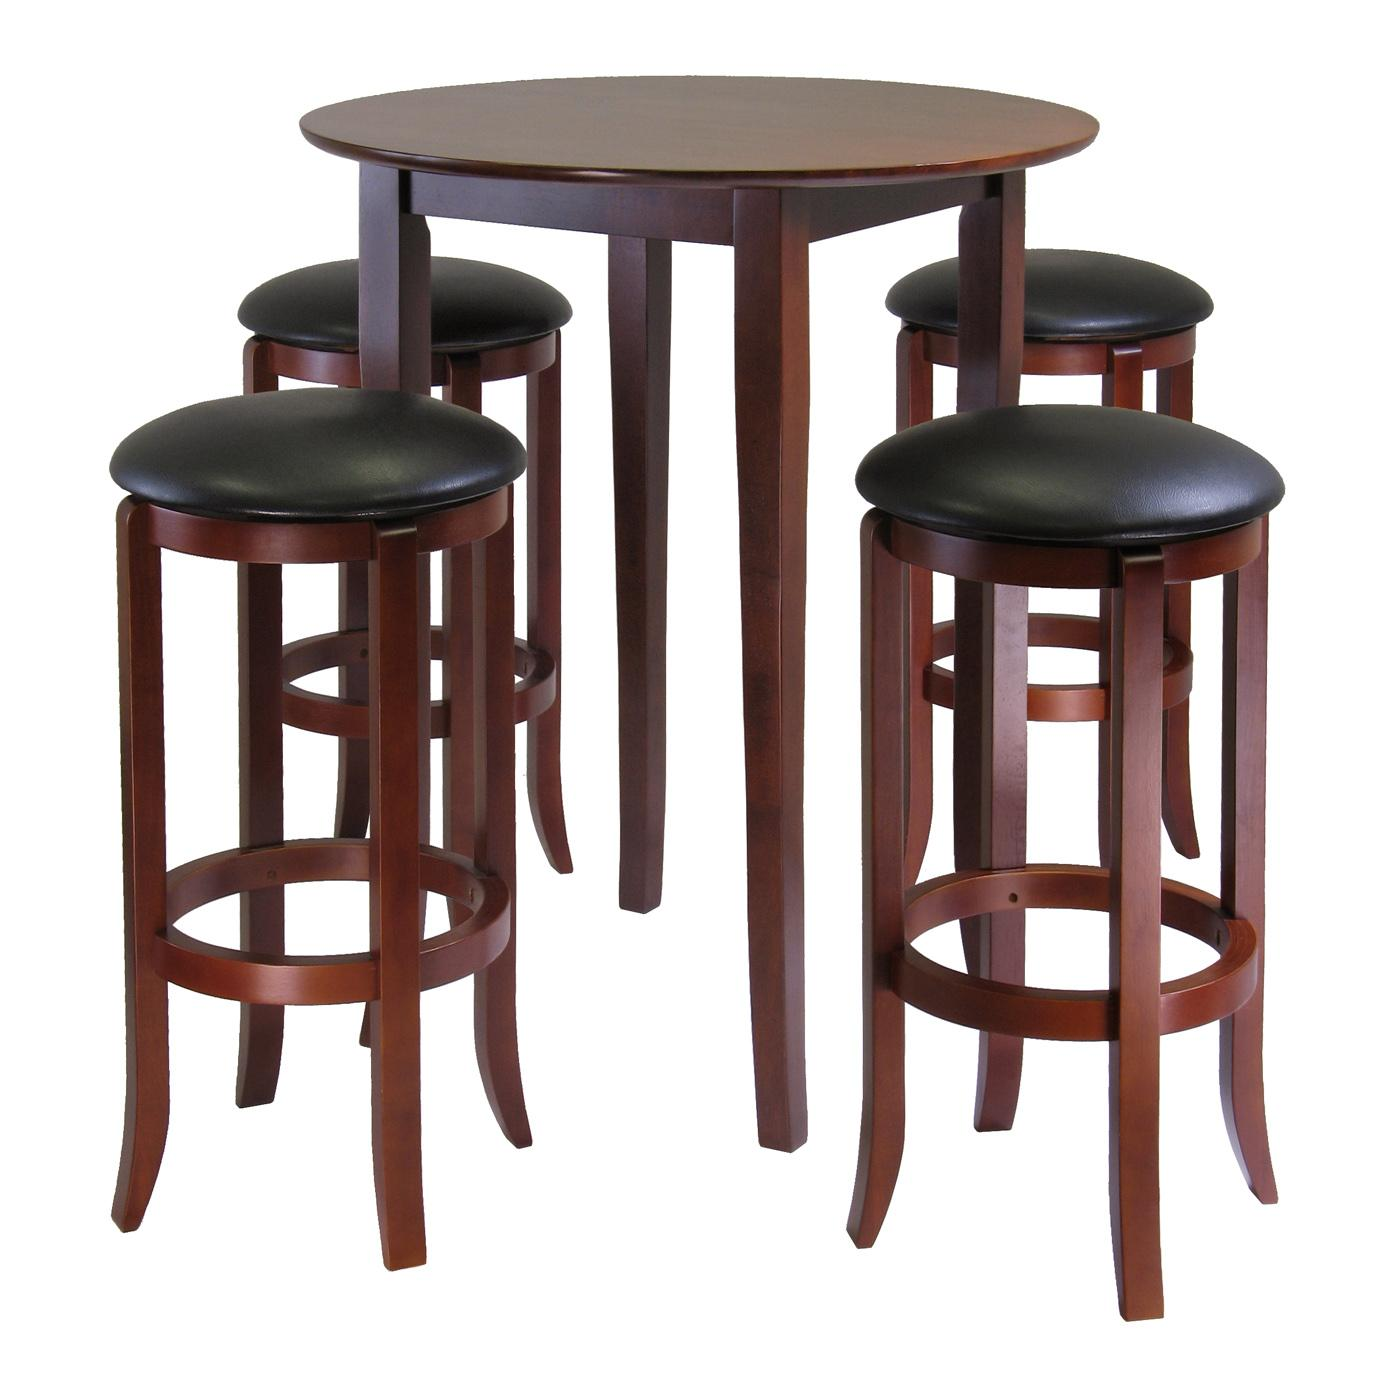 Winsome fiona 5 piece round high pub table set for Round cocktail table with stools